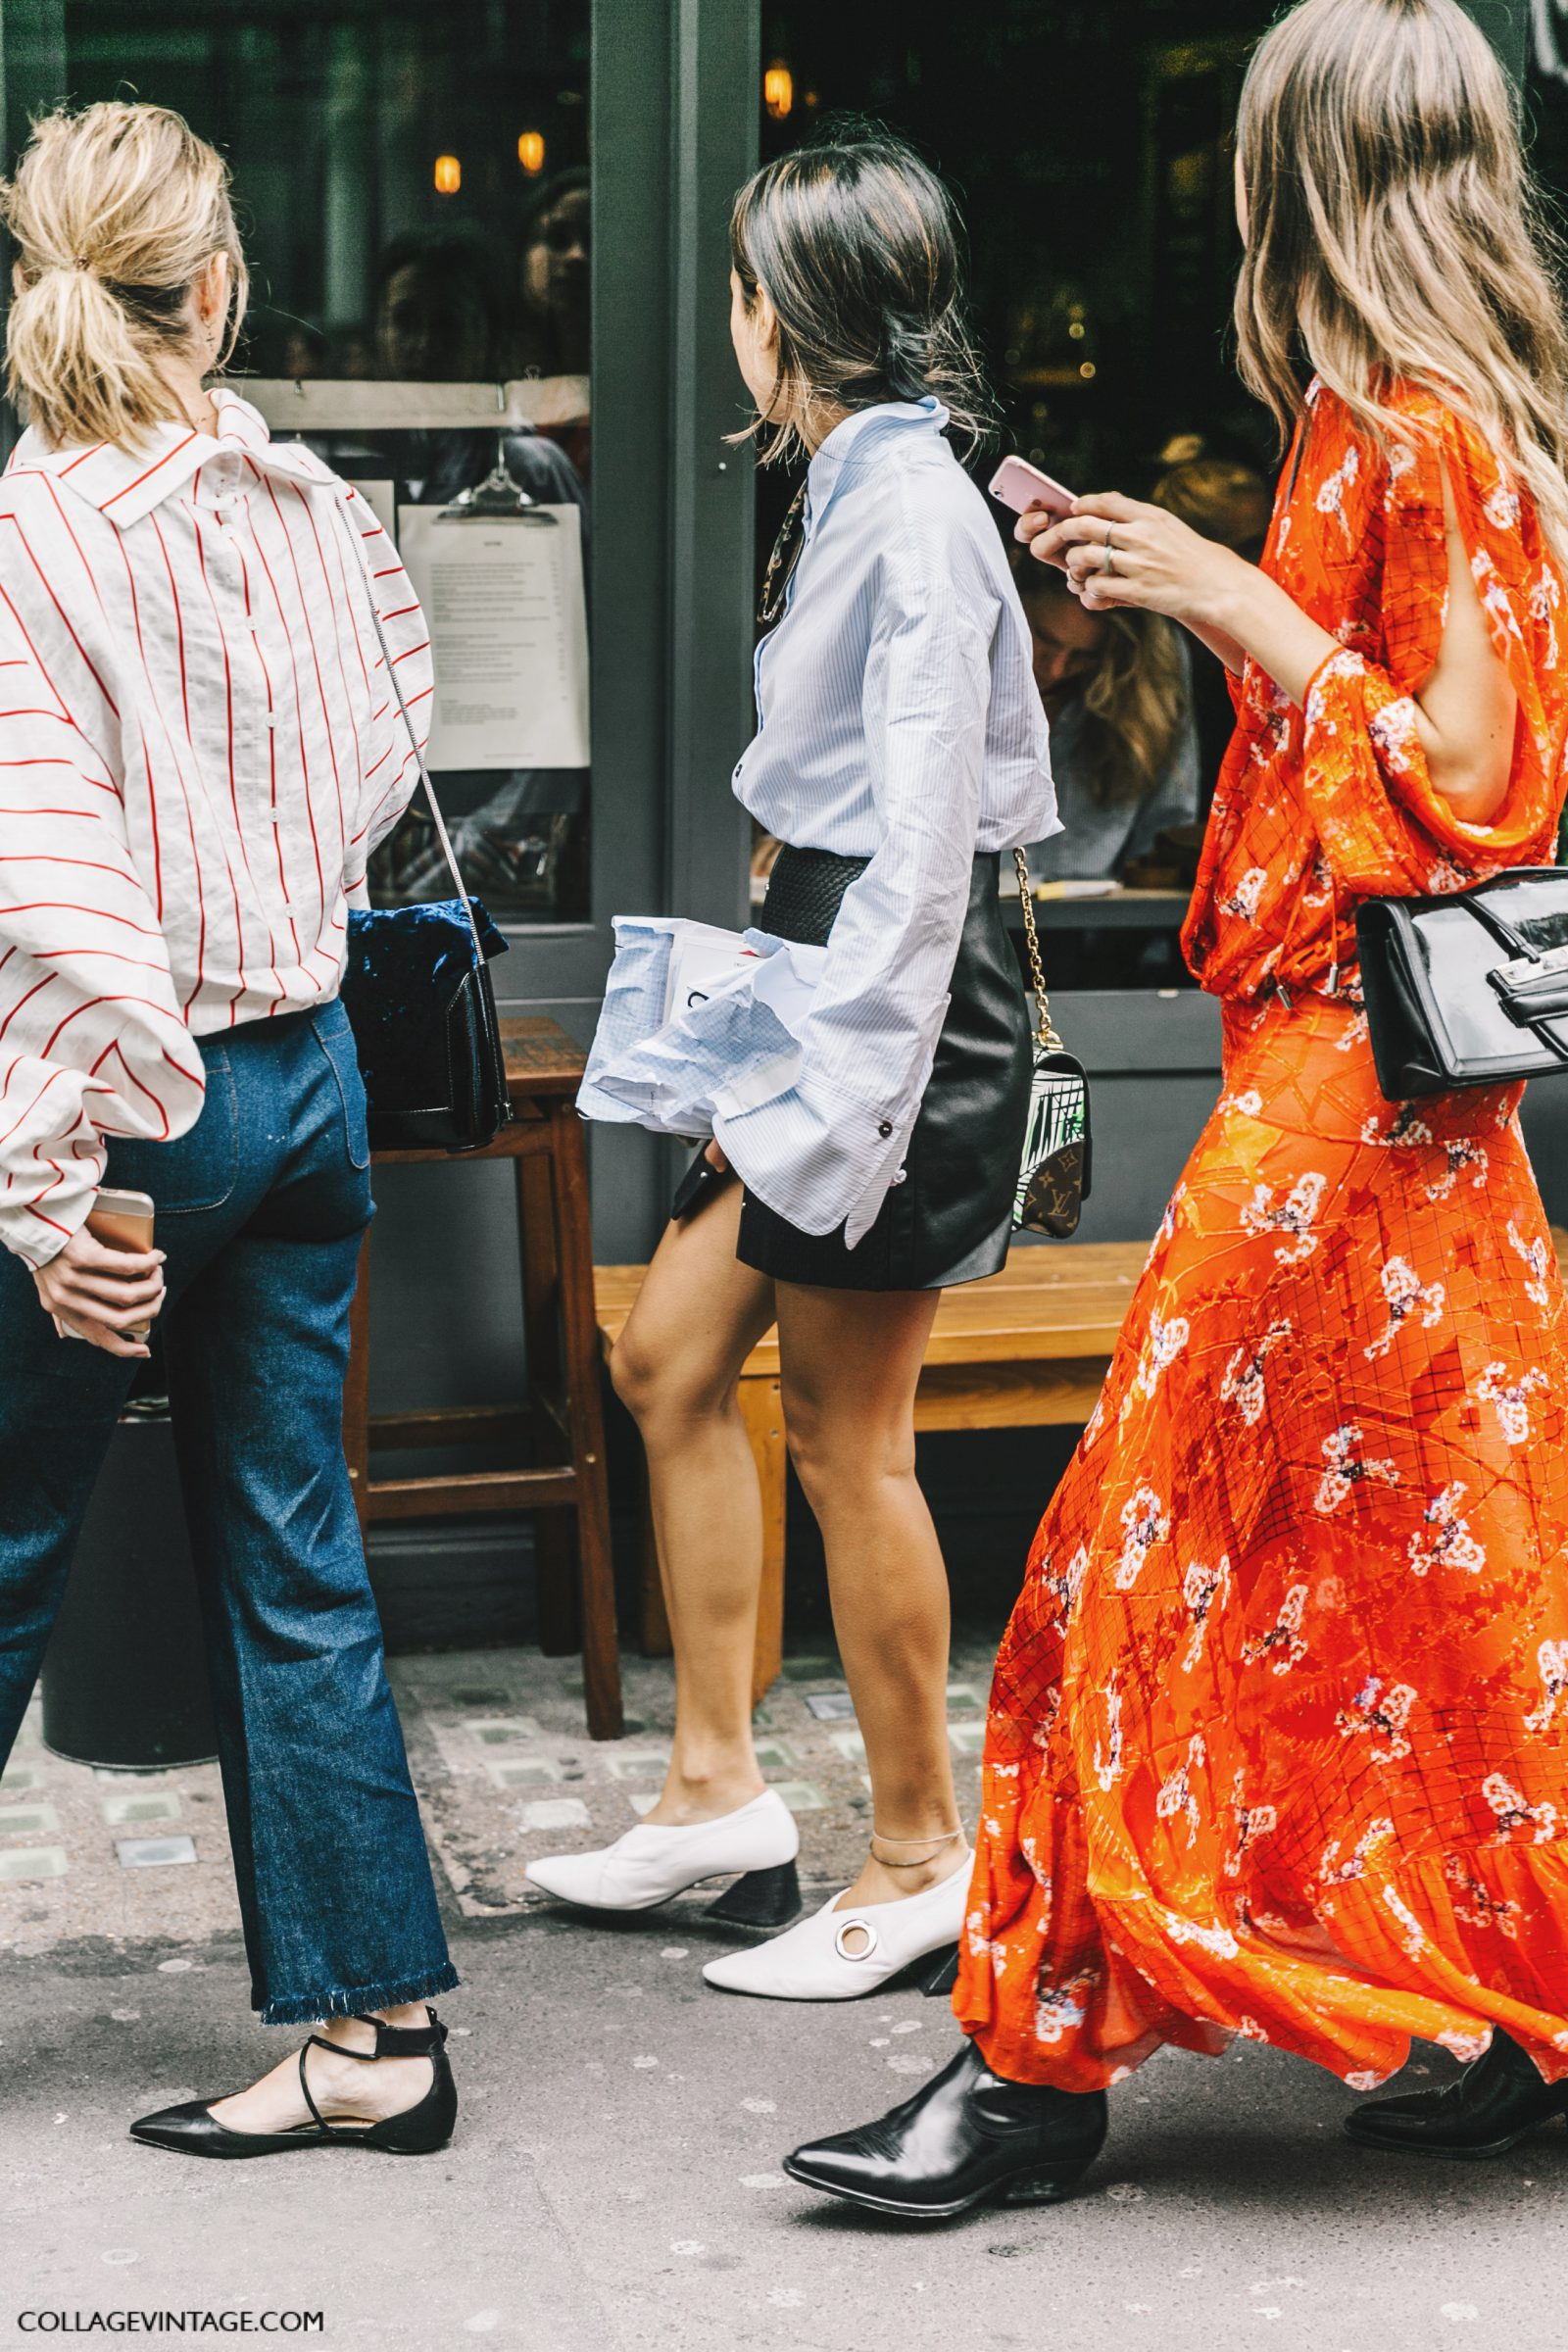 lfw-london_fashion_week_ss17-street_style-outfits-collage_vintage-vintage-topshop_unique-anya-mulberry-preen-151